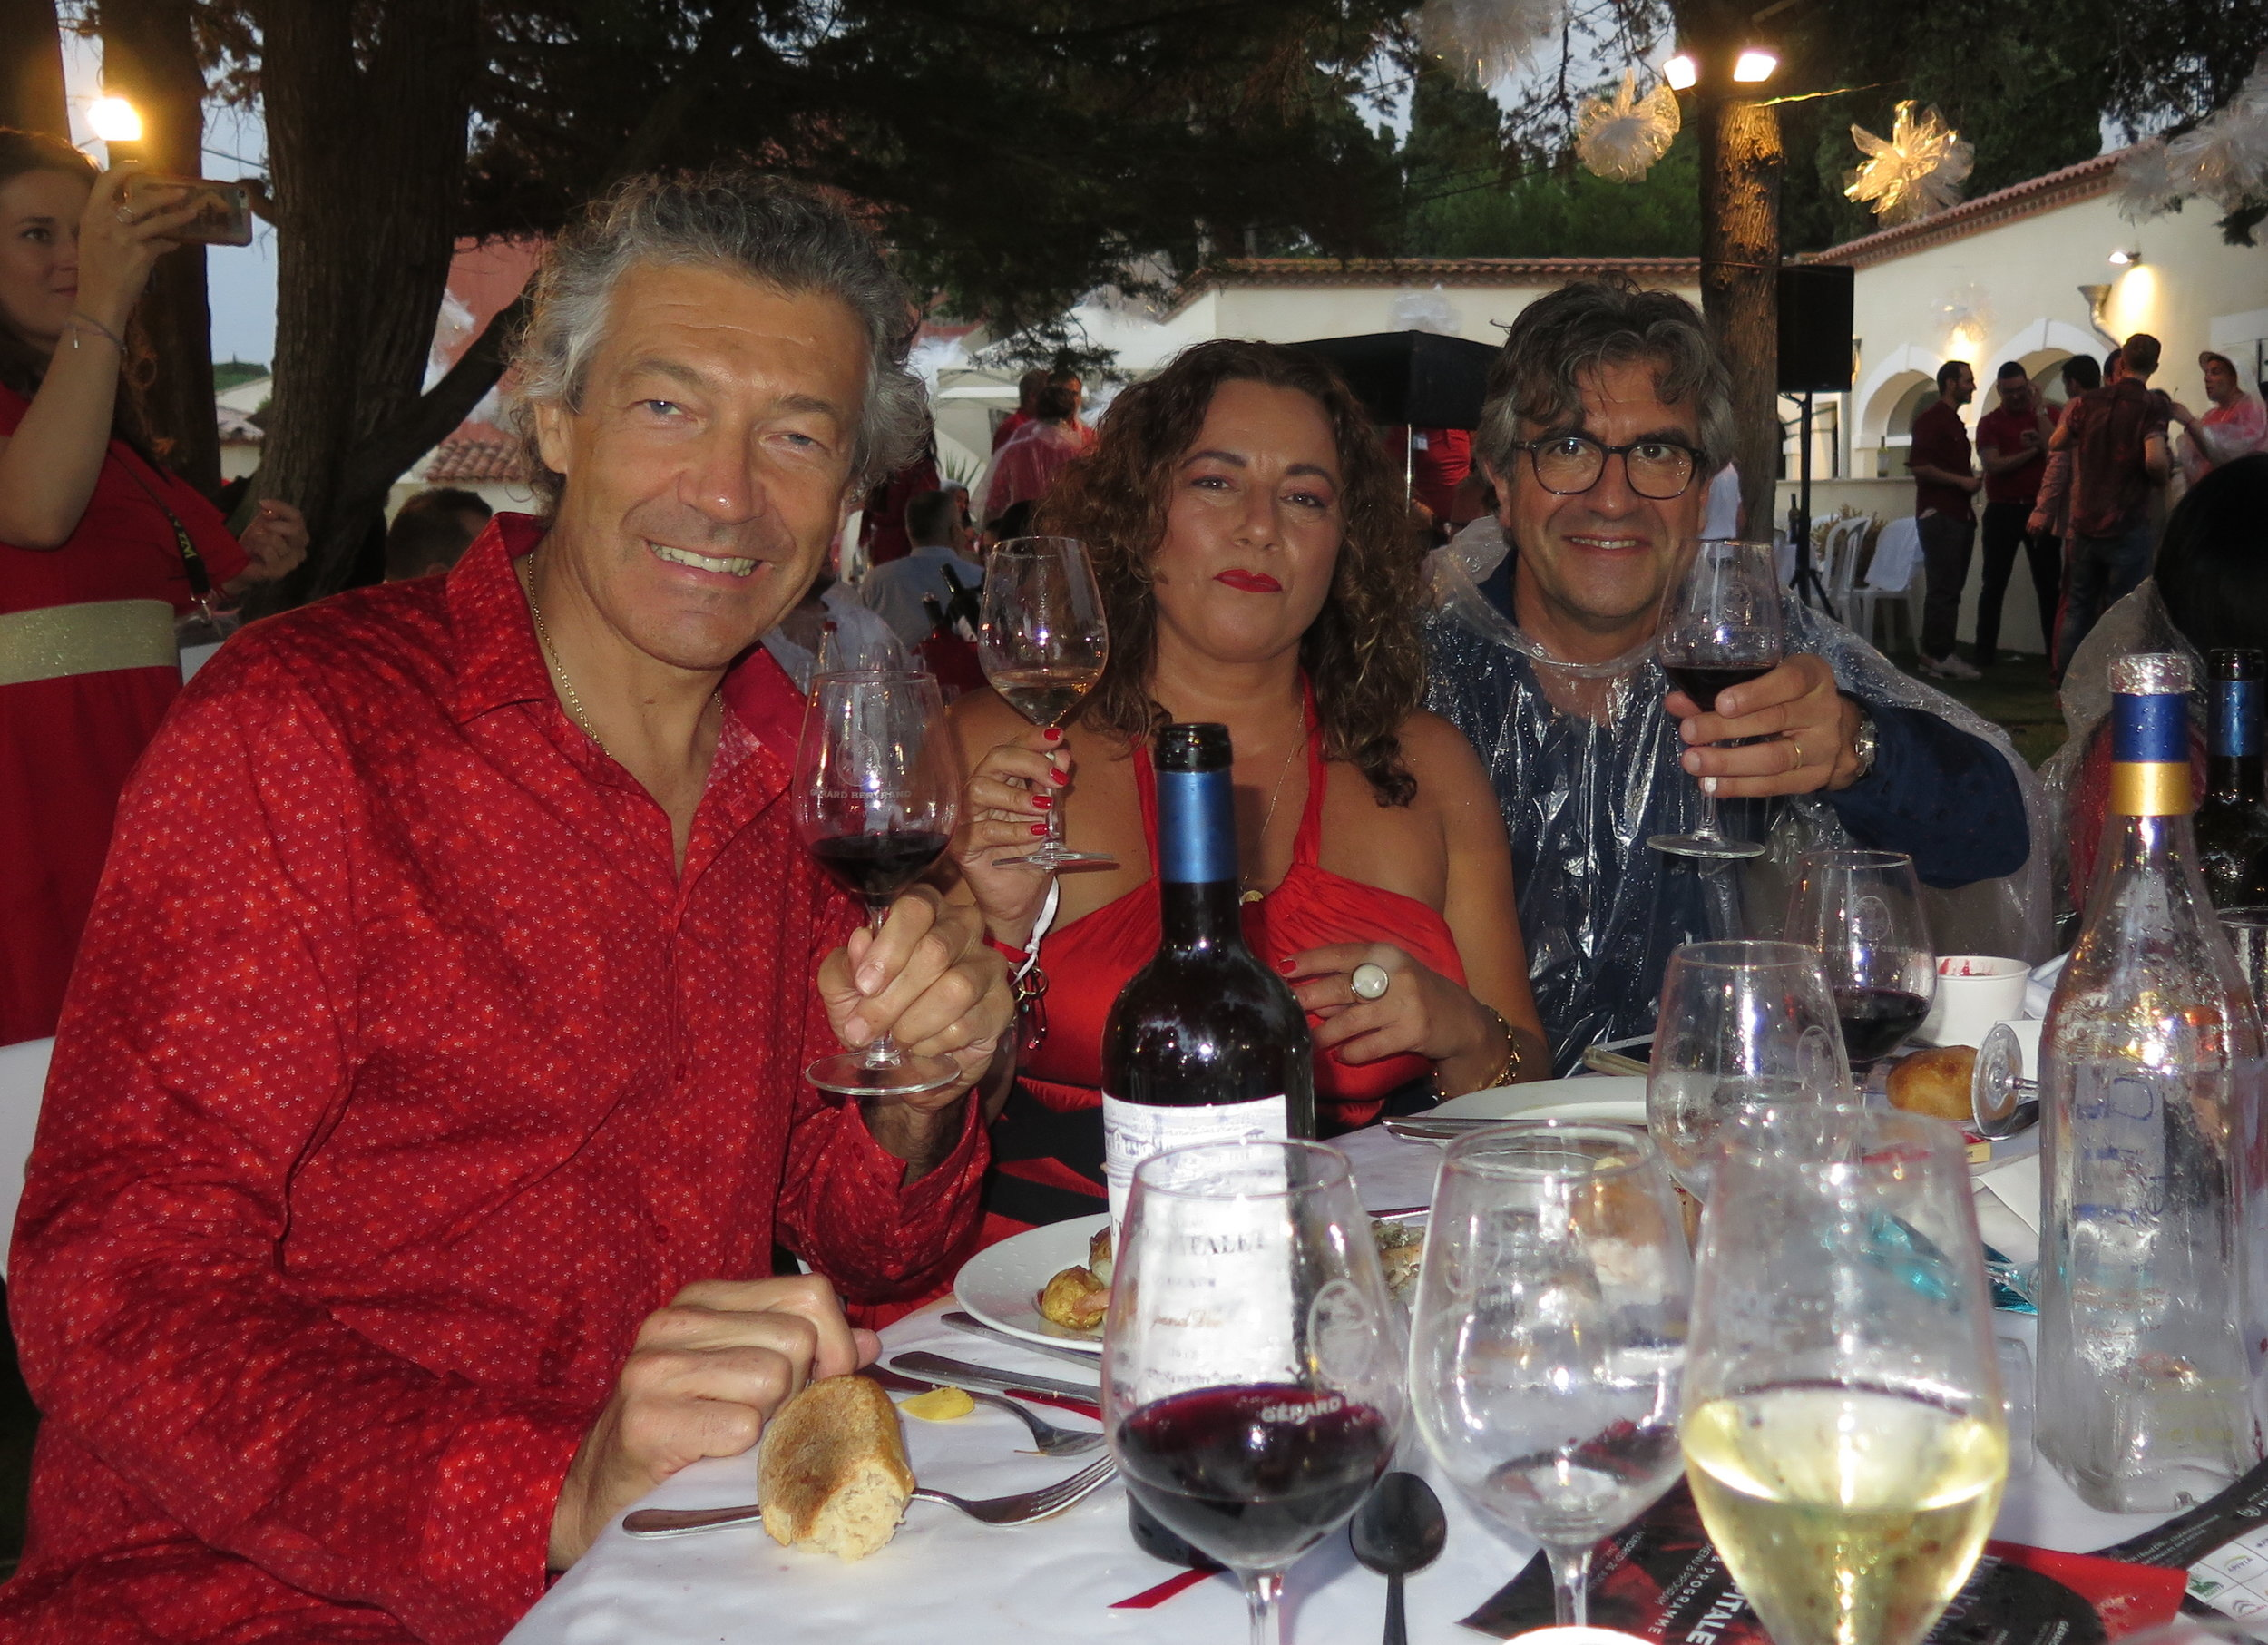 Gerard Bertrand, Selma Fonseca and Thierry de Bailleul. Photo by Selma Fonseca